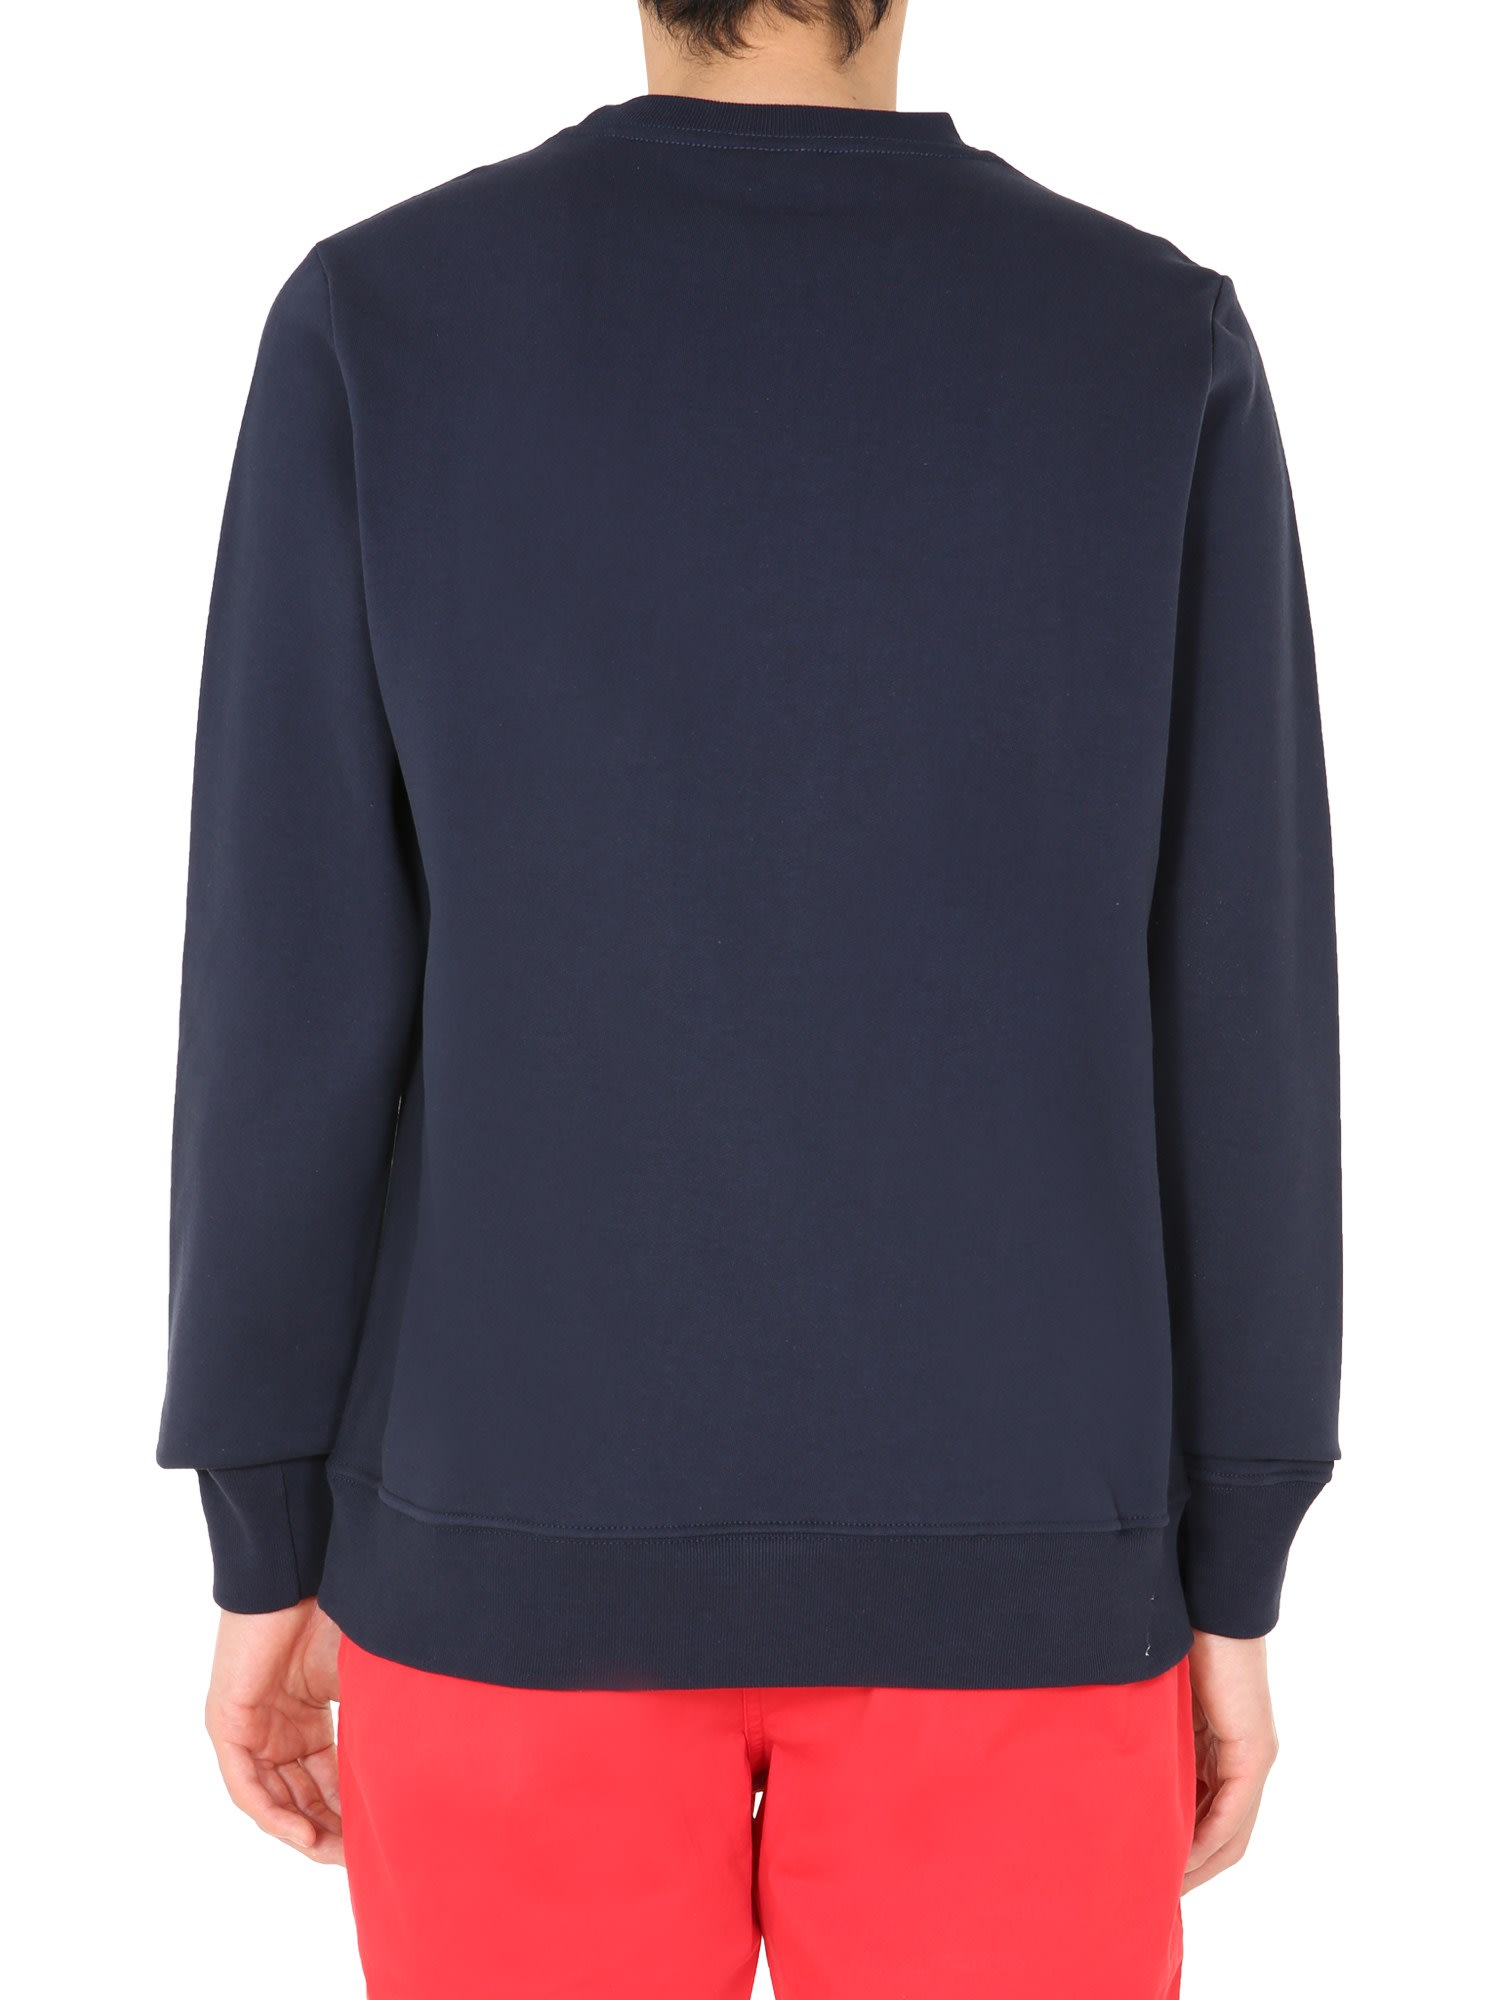 High Quality Ps By Paul Smith Round Neck Sweatshirt - Top